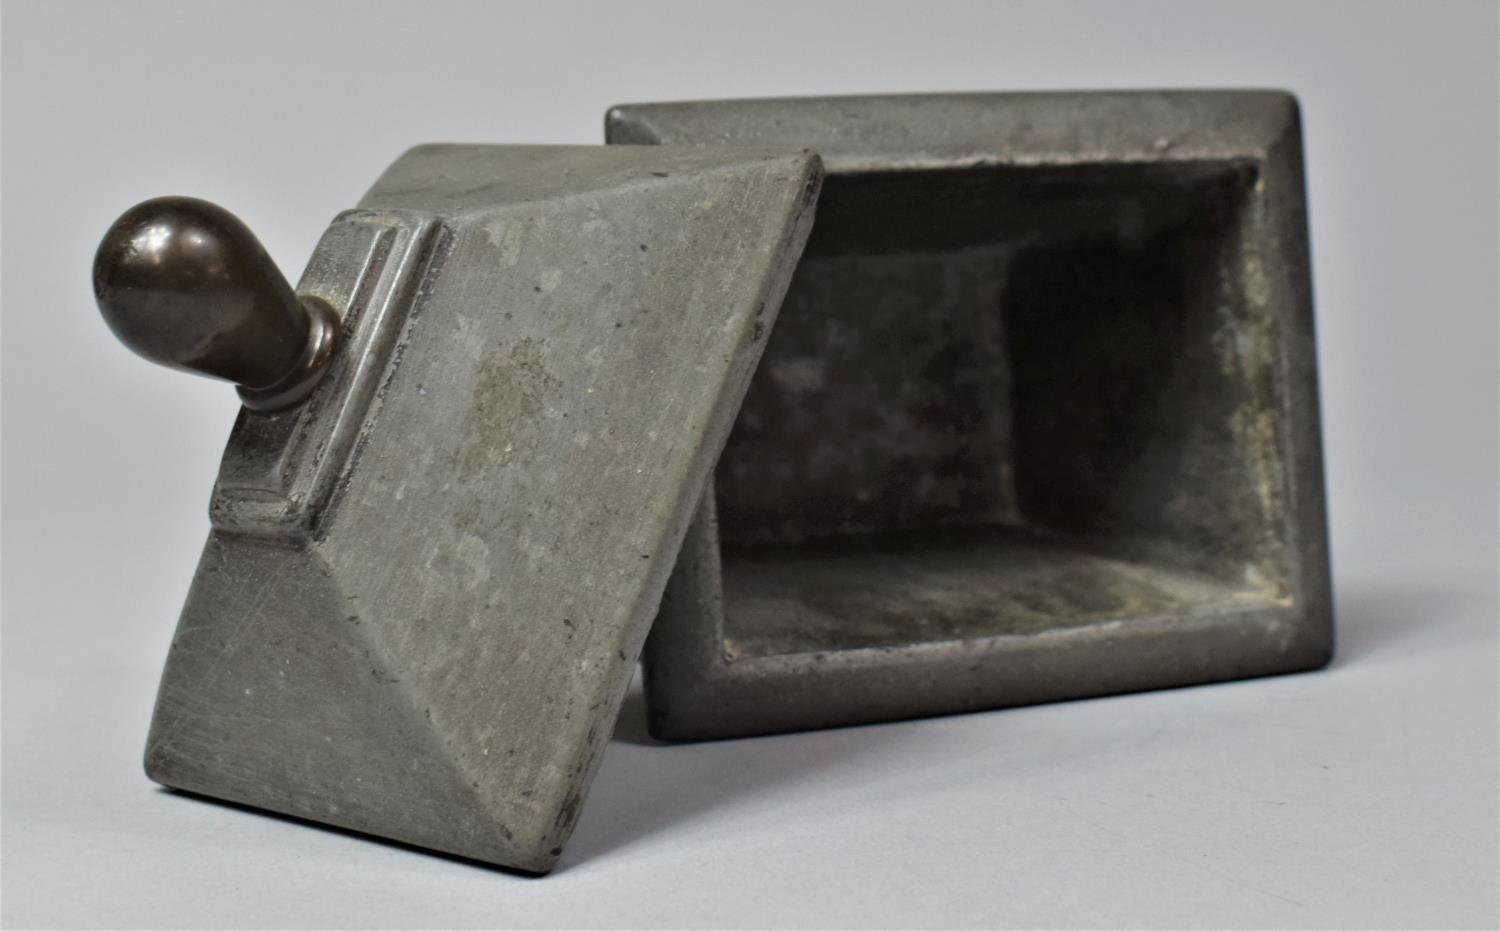 A 19th Century Lead Tobacco Box of Sarcophagus Form, 11cm Wide - Image 4 of 6